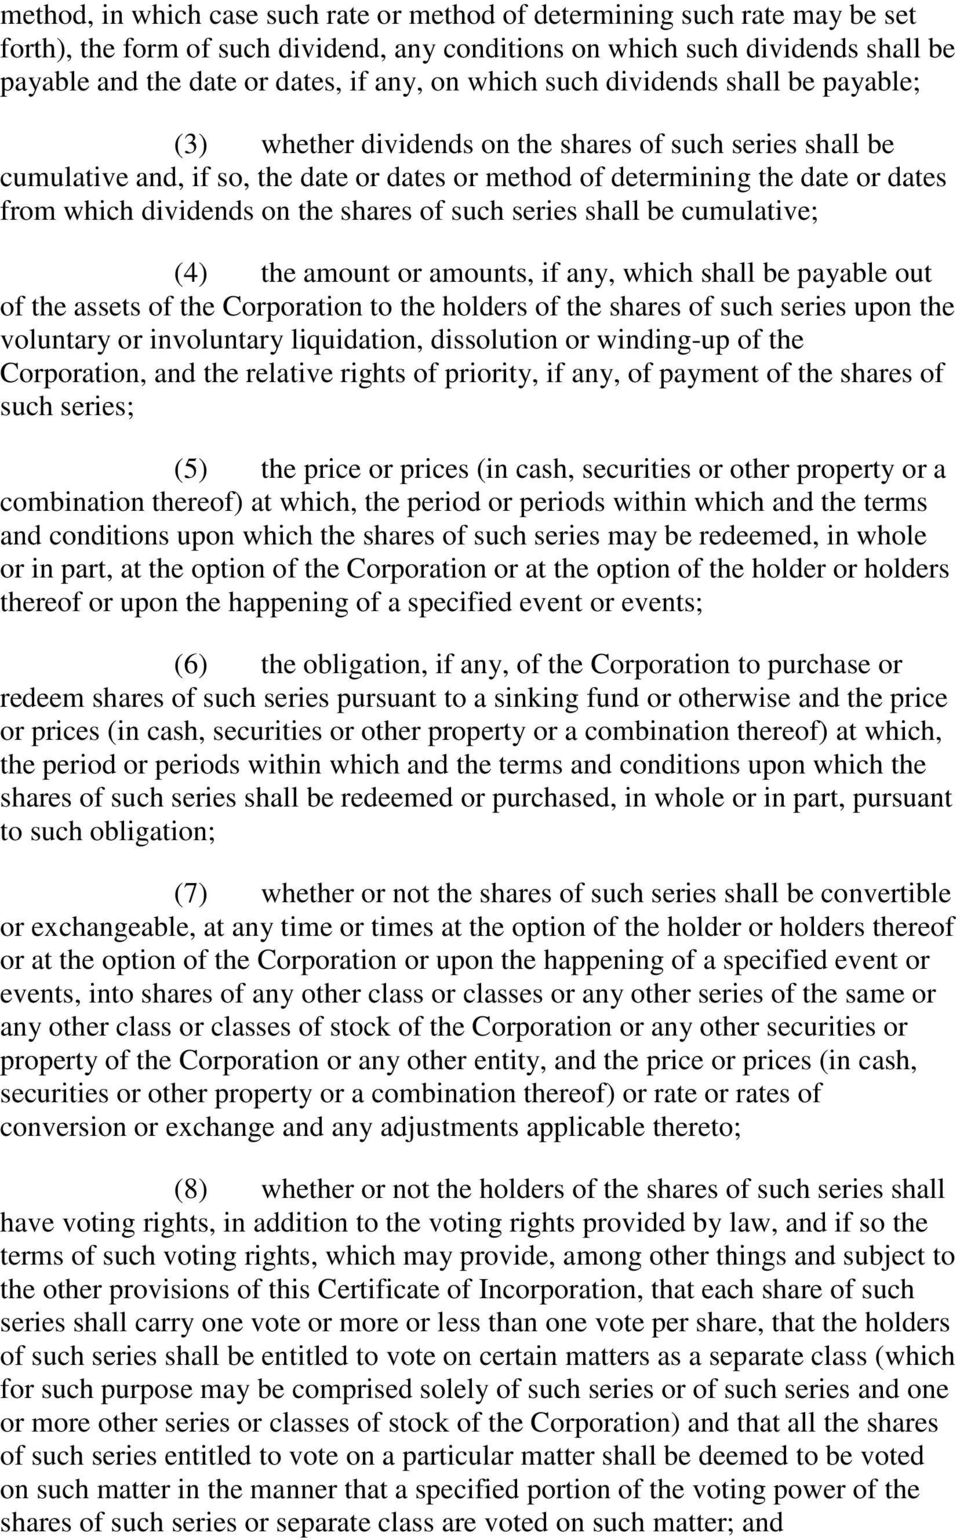 dividends on the shares of such series shall be cumulative; (4) the amount or amounts, if any, which shall be payable out of the assets of the Corporation to the holders of the shares of such series